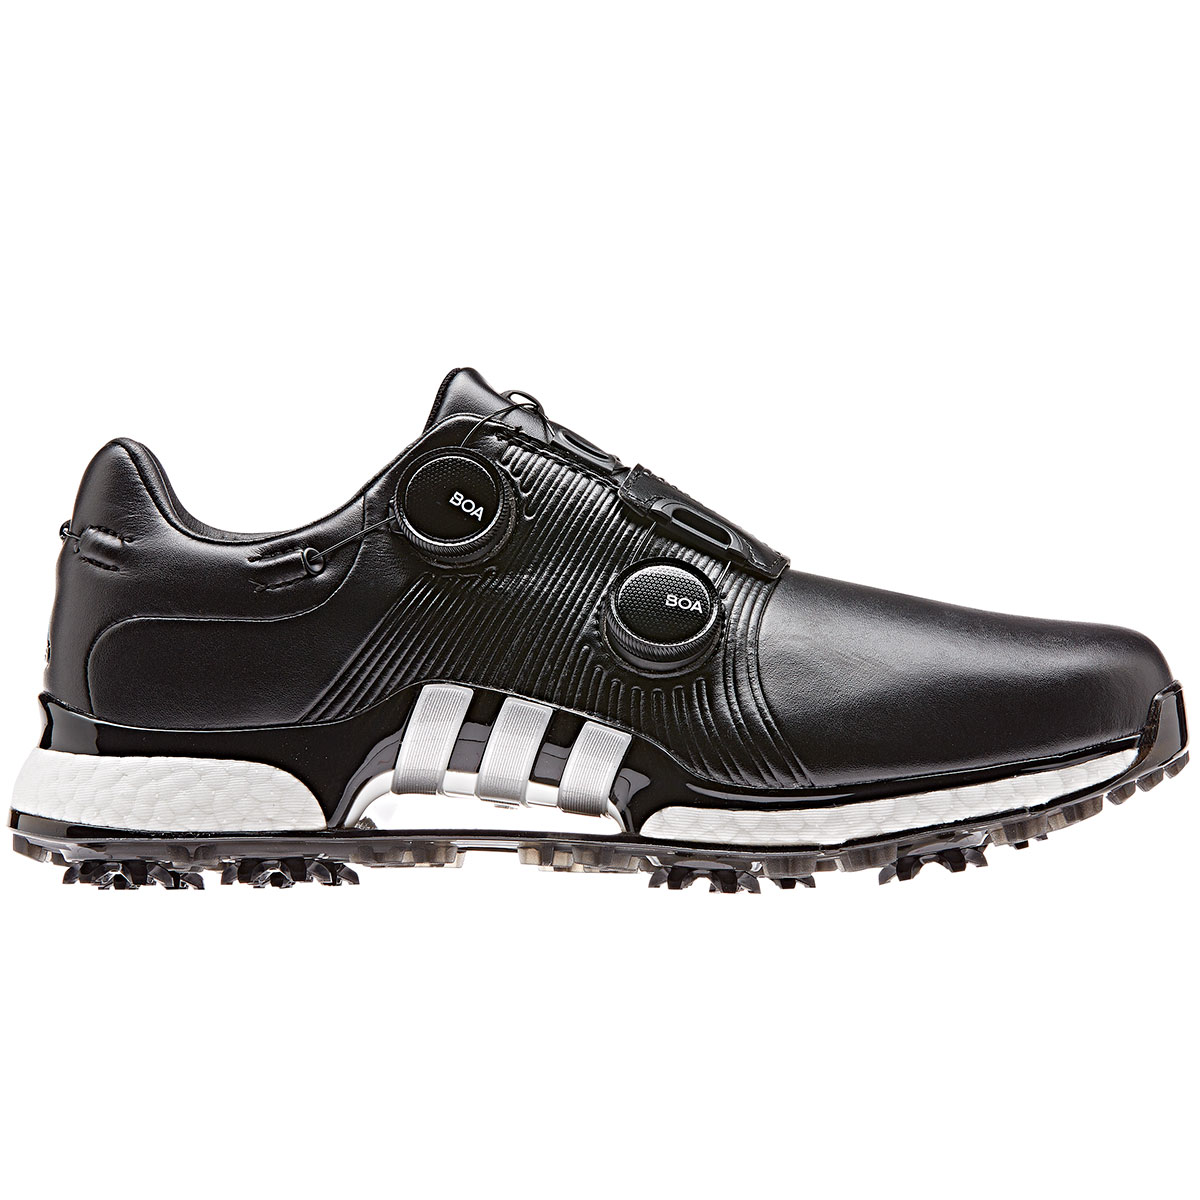 Adidas Golf Shoes : Shop Adidas trainers and shoes with Low